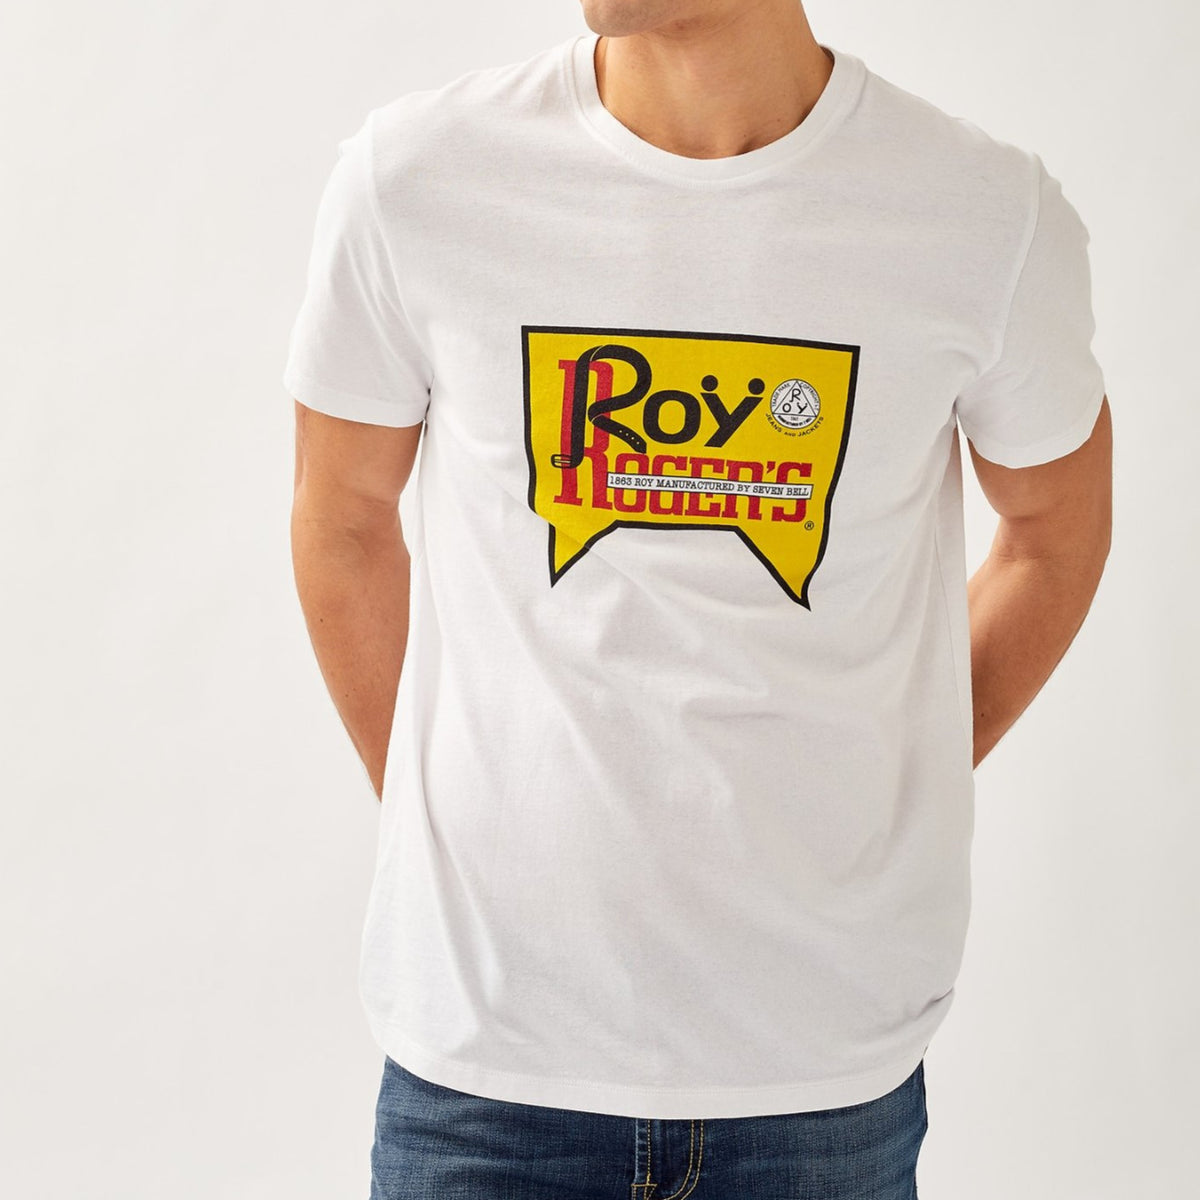 ROY ROGER'S TSHIRT JERSEY ROY VINTAGE UOMO DONNA